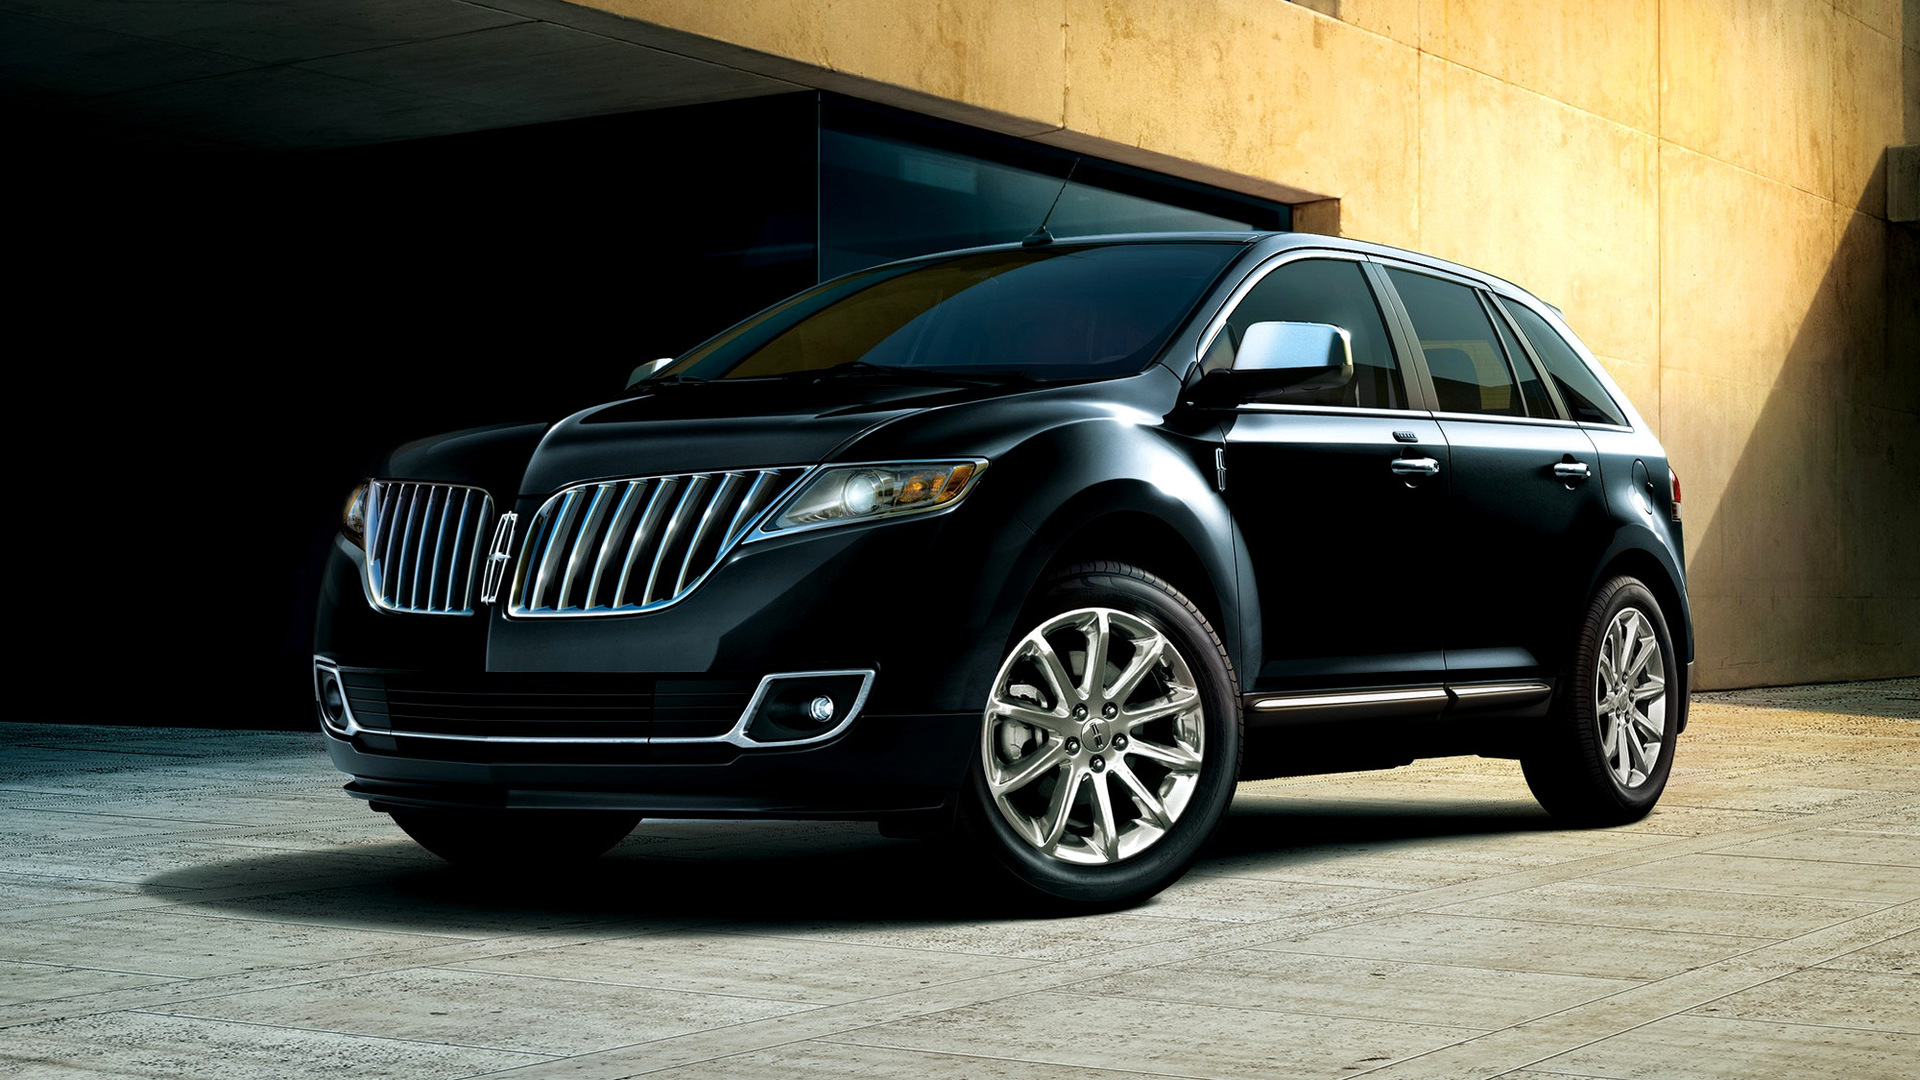 2010 Lincoln Mkx Wallpapers And Hd Images Car Pixel